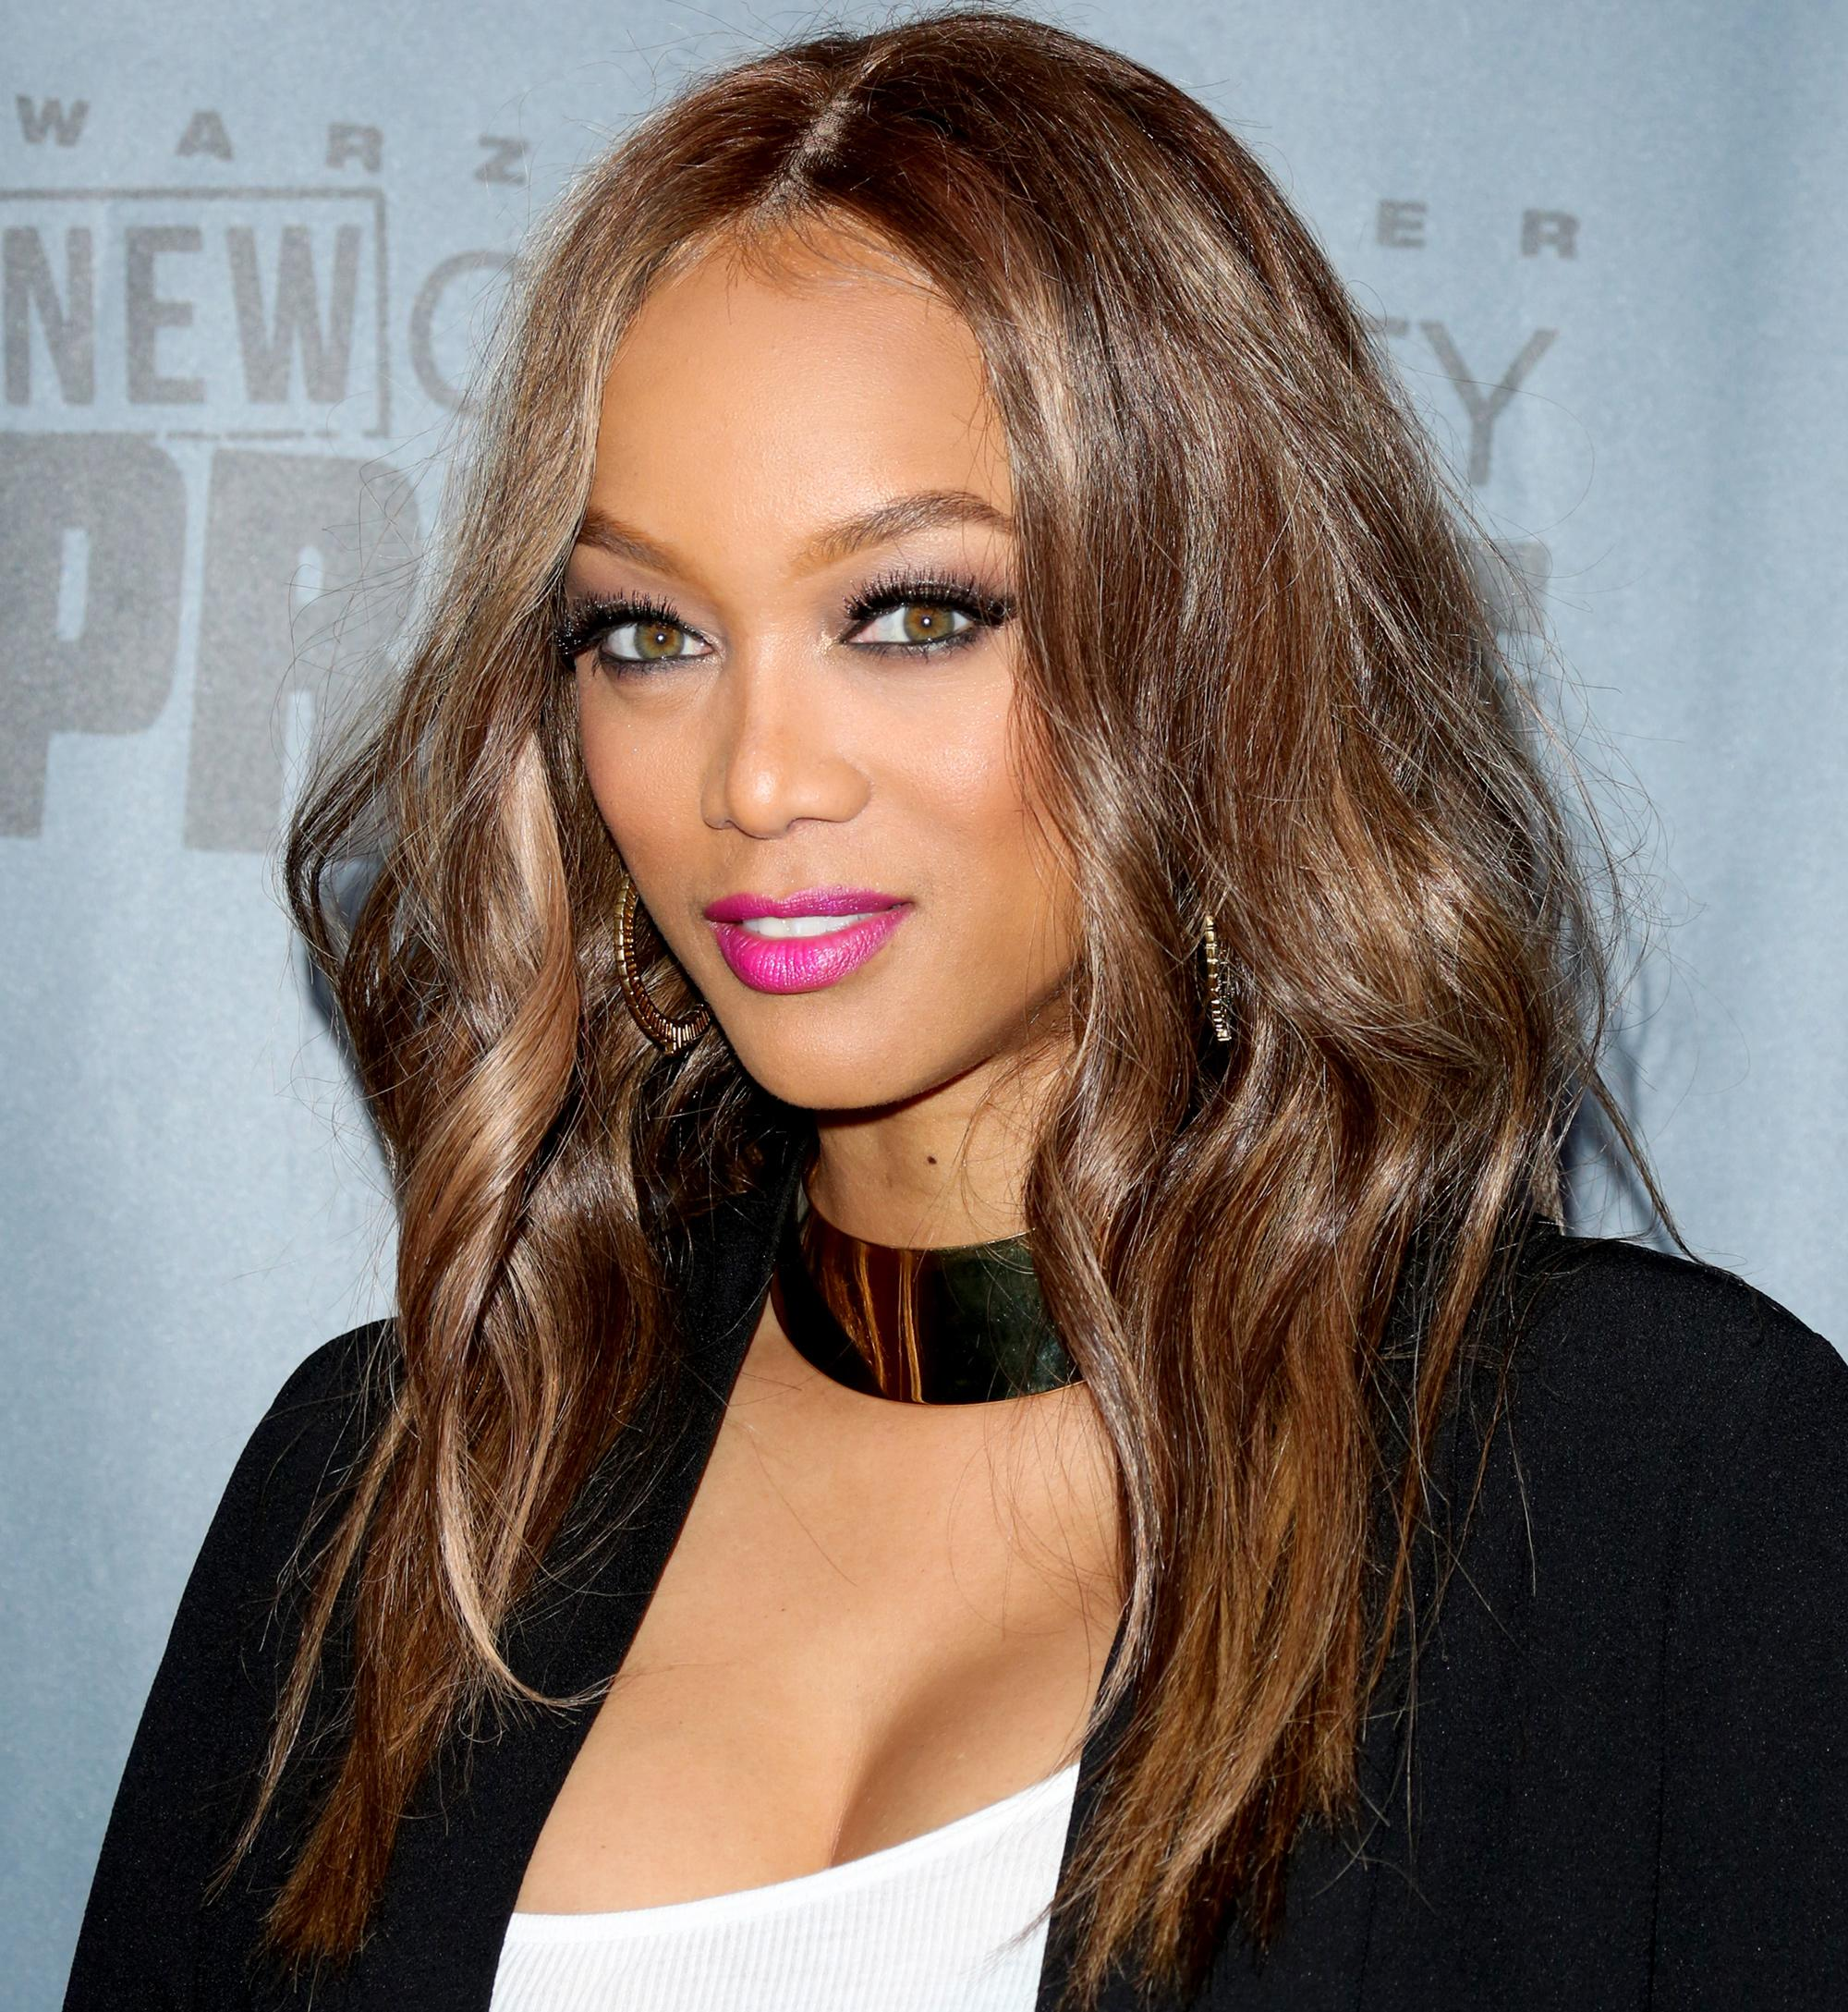 Is Tyra Banks's Life-Size Sequel Taking A Cue From Lady Gaga?